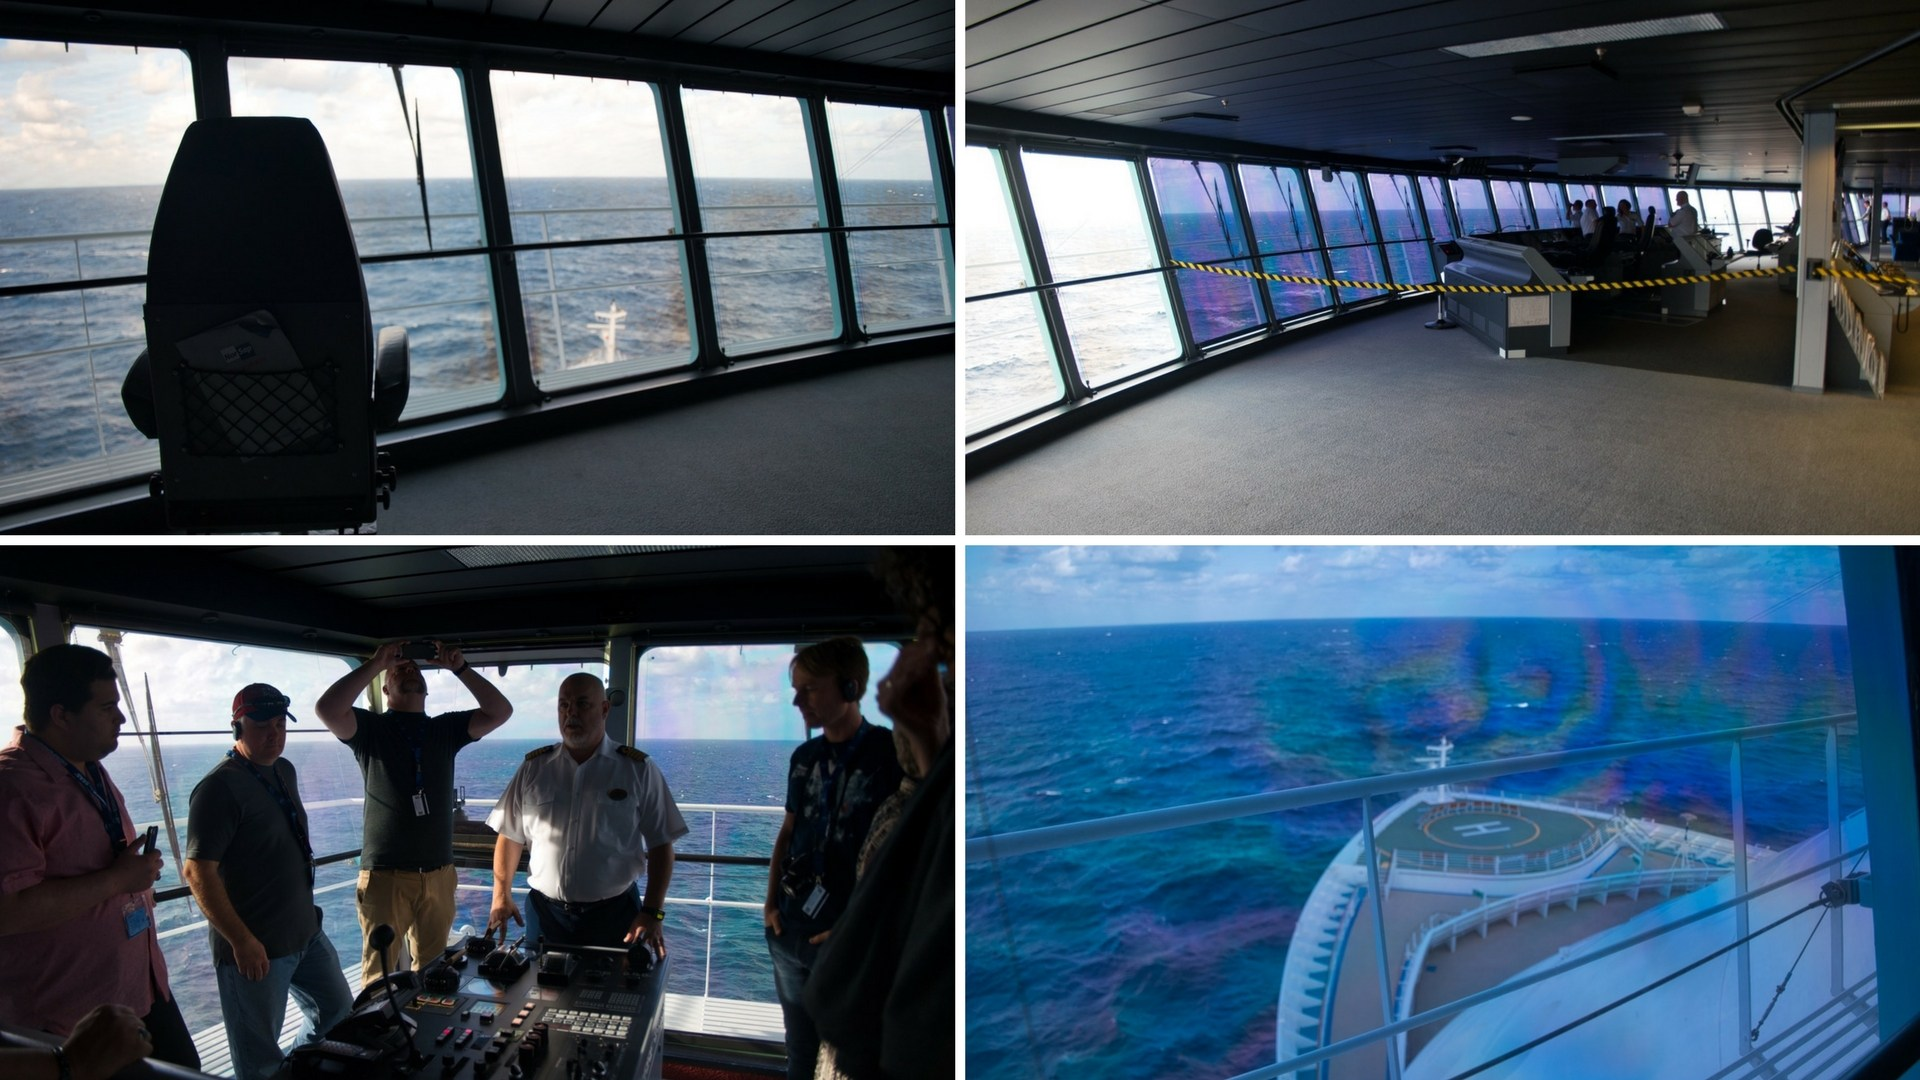 All Access Ship Tour - Bridge - Captain Theo Explains the Role of the Bridge